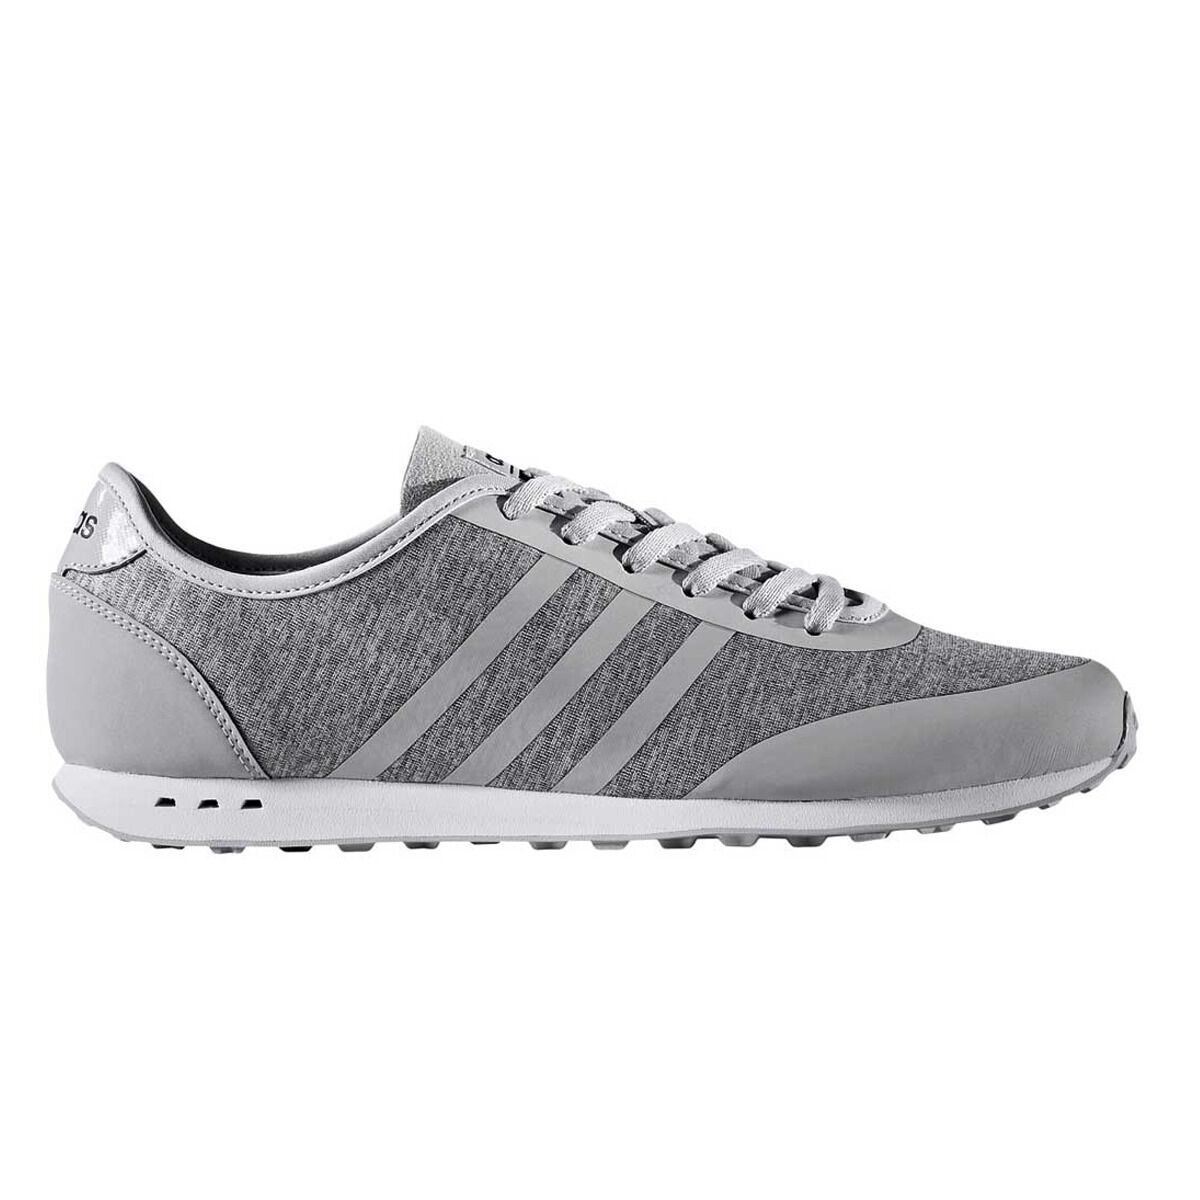 Style Racer Womens Casual Shoes